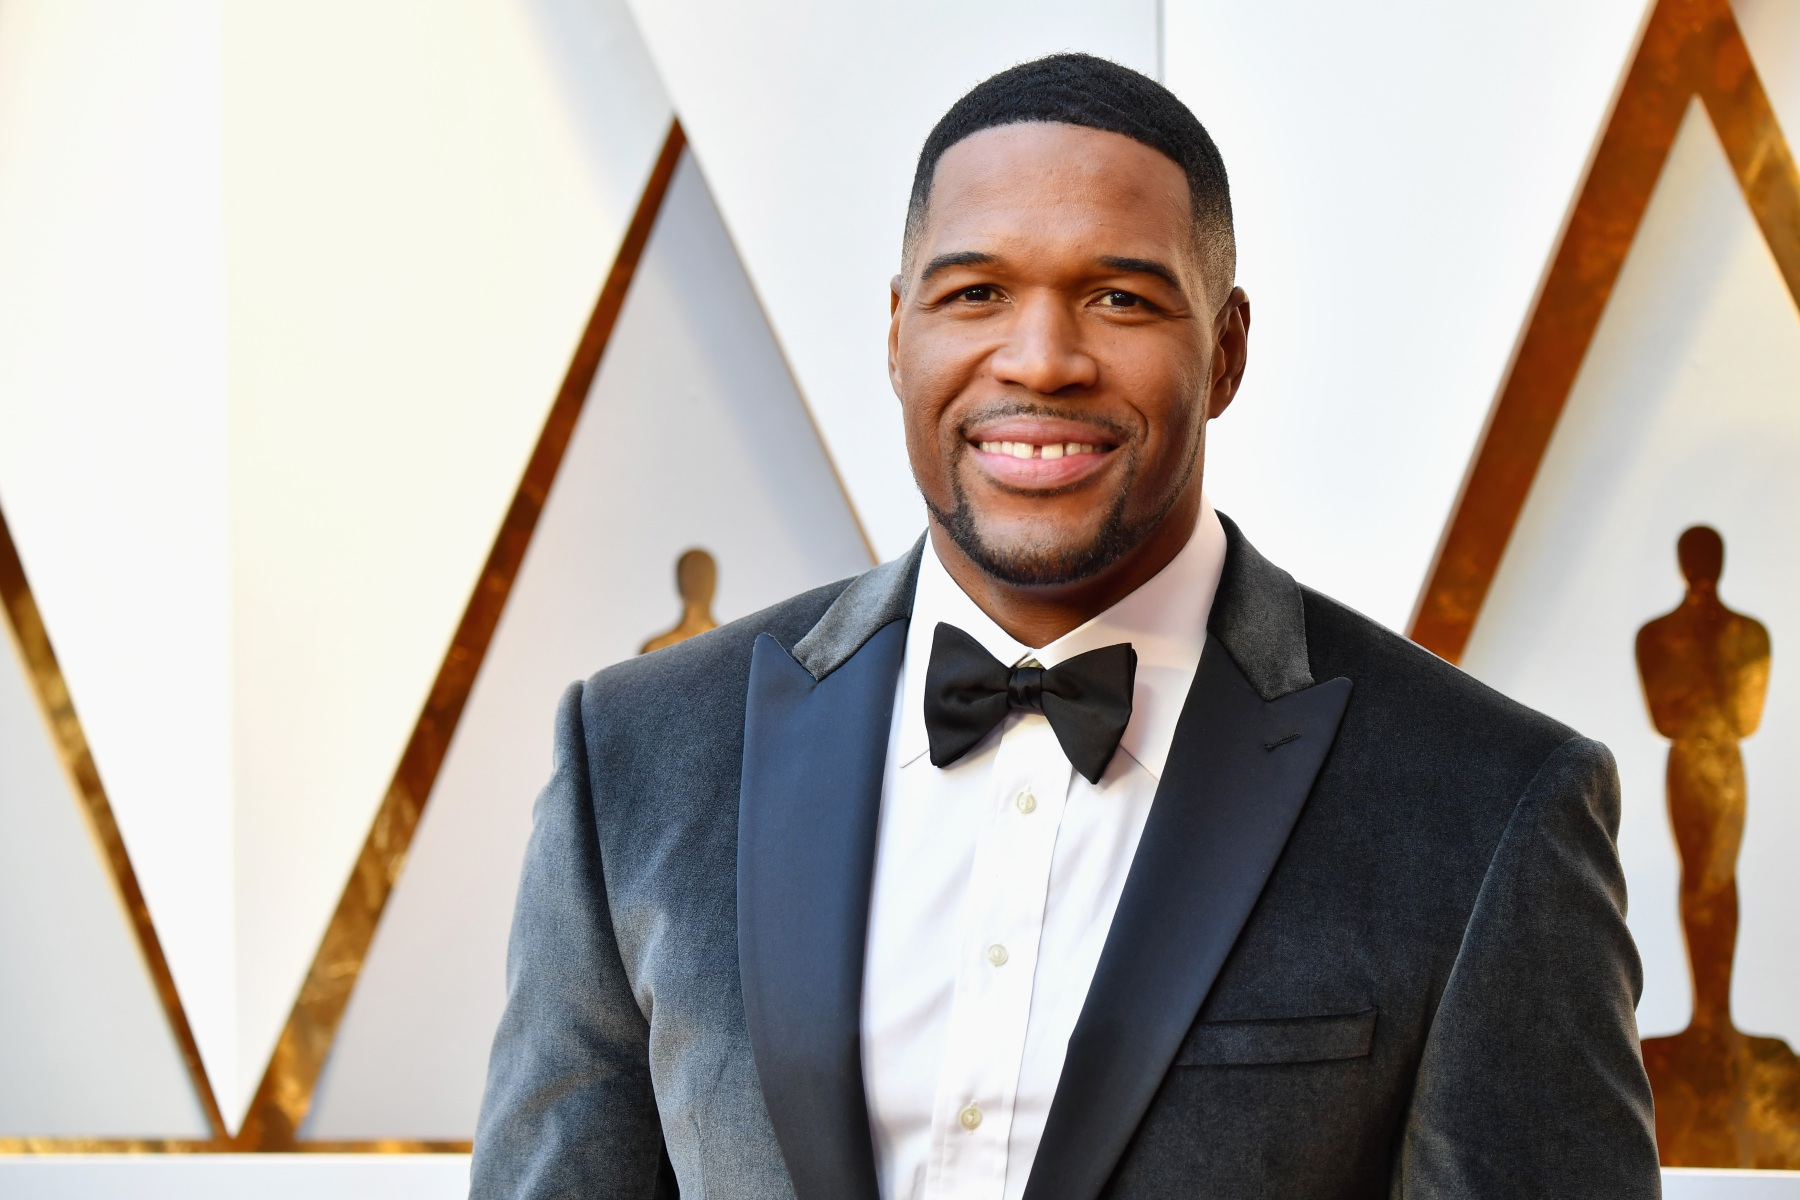 Michael Strahan attends the 90th Annual Academy Awards at Hollywood & Highland Center on March 4, 2018 in Hollywood, California.  (Photo by Jeff Kravitz/FilmMagic)